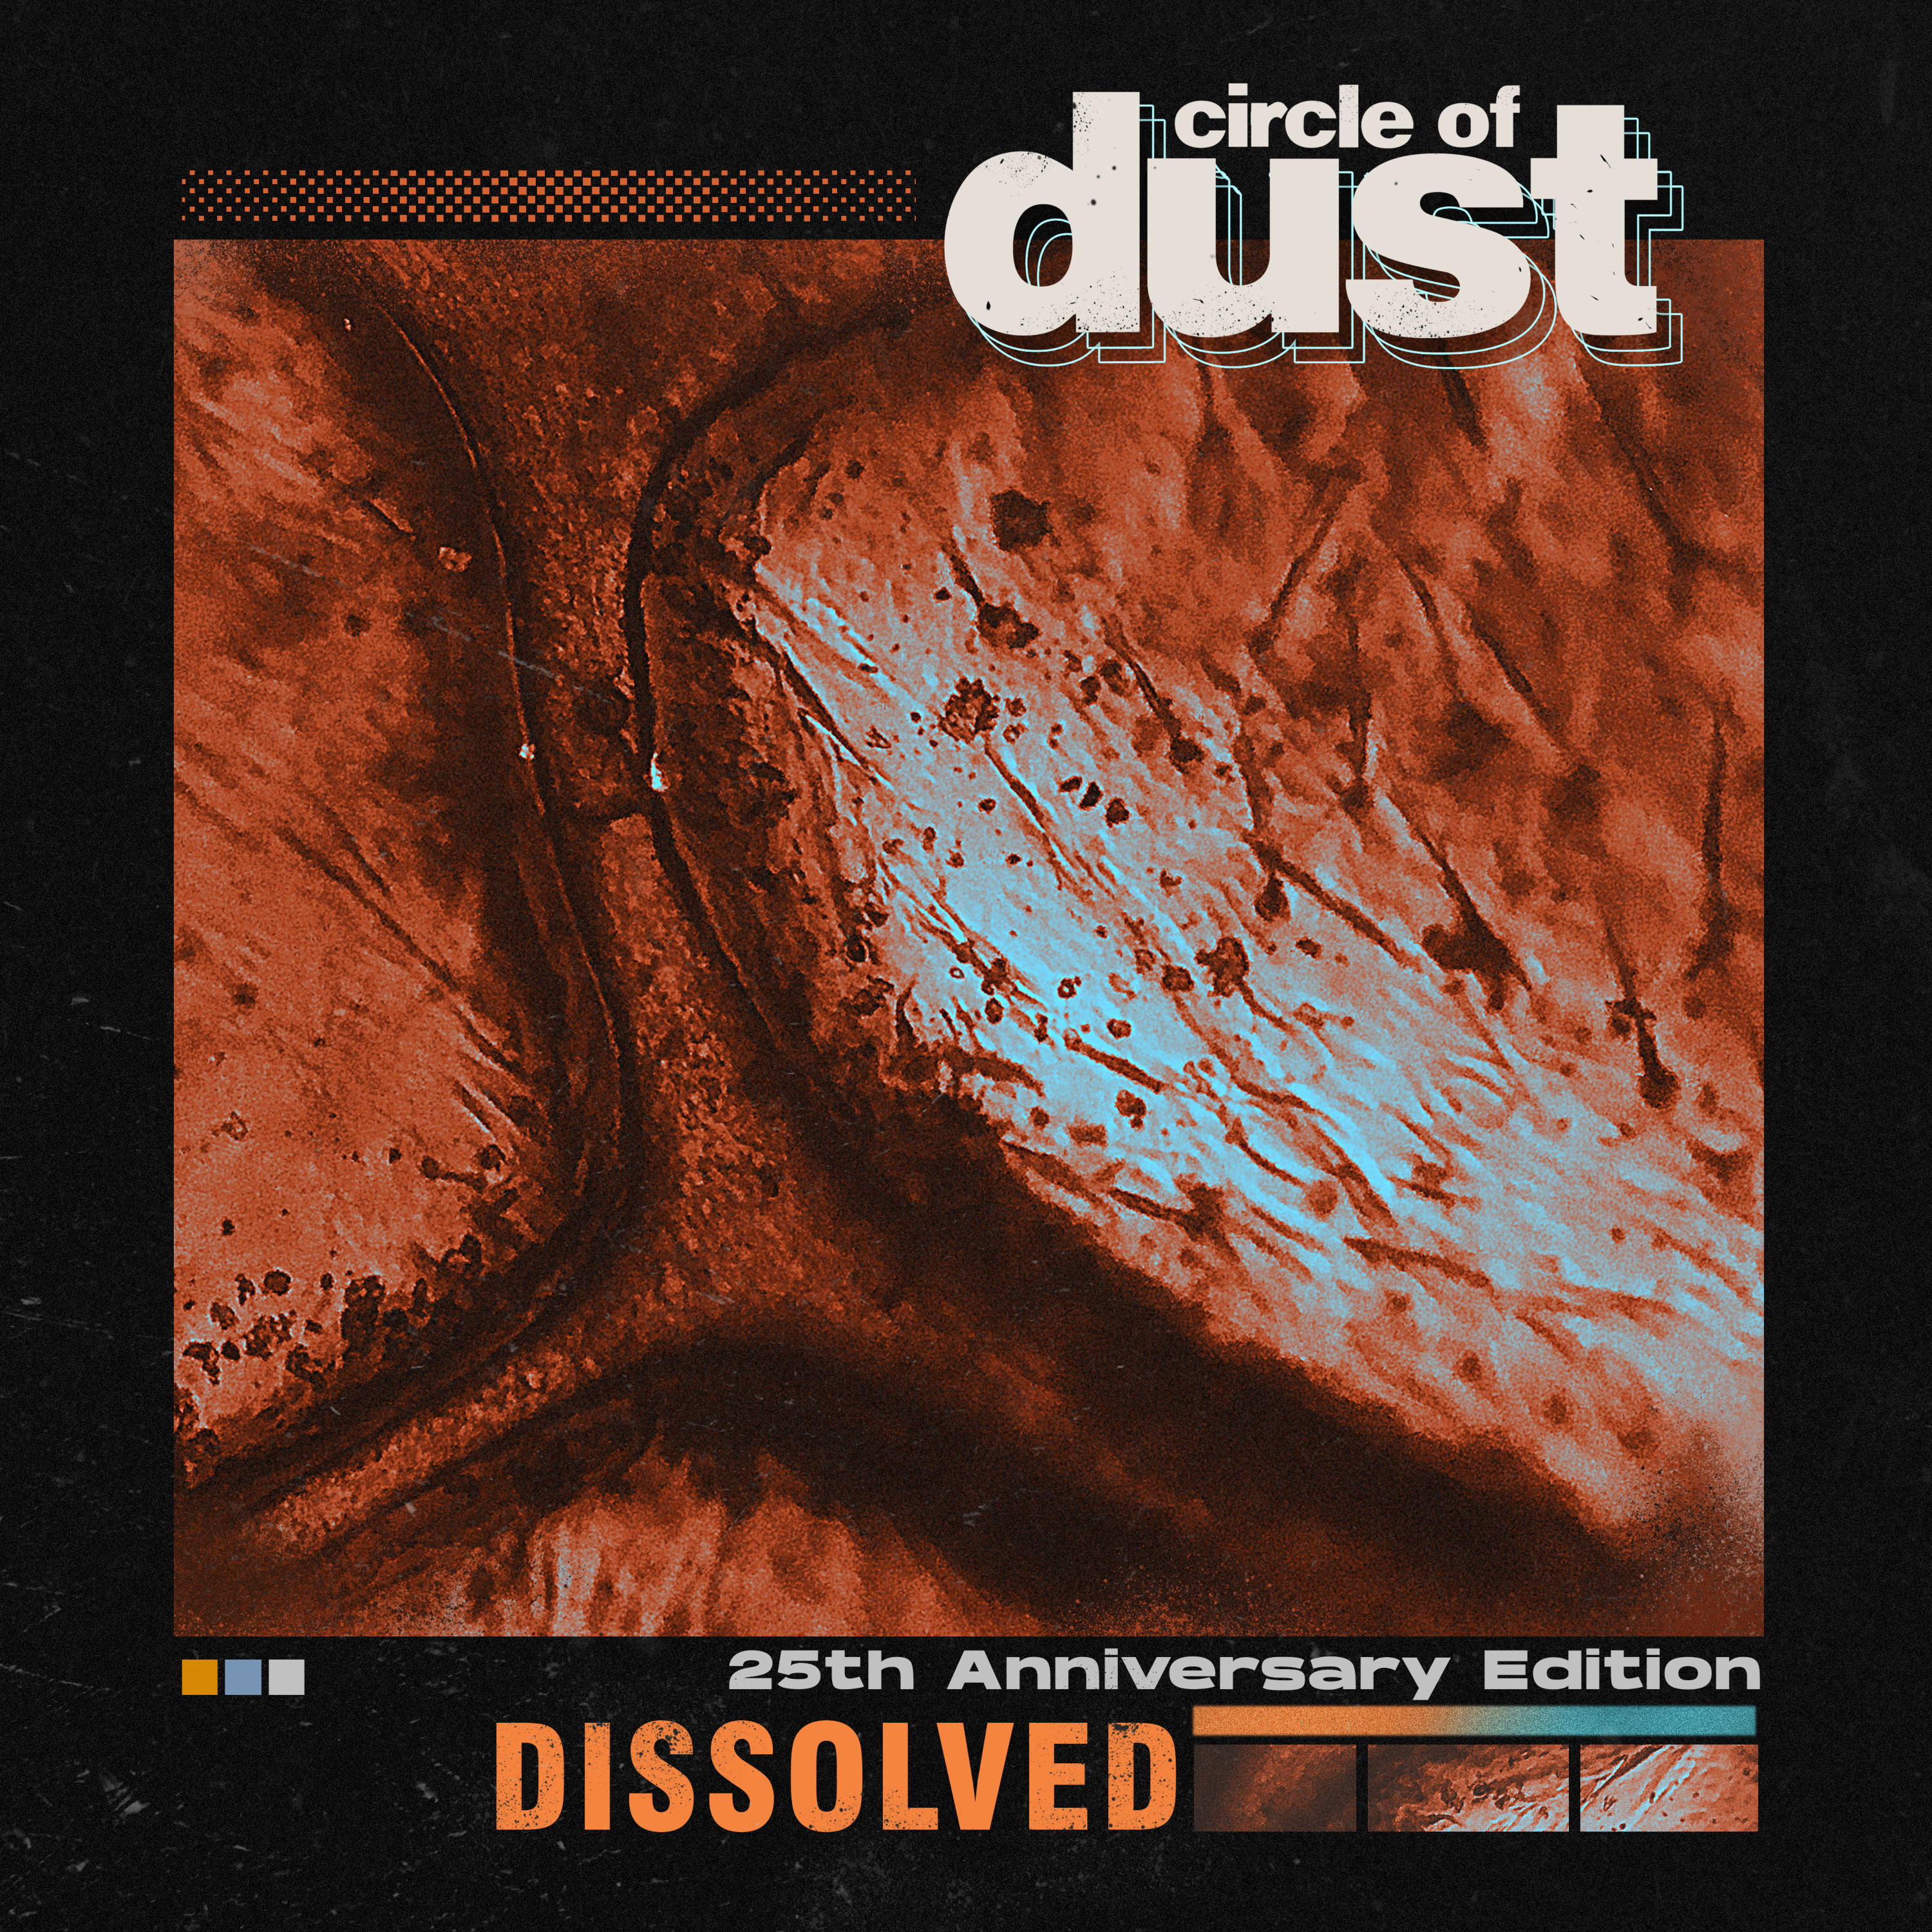 Circle of Dust - Dissolved (25th Anniversary Mix) [Single] Image